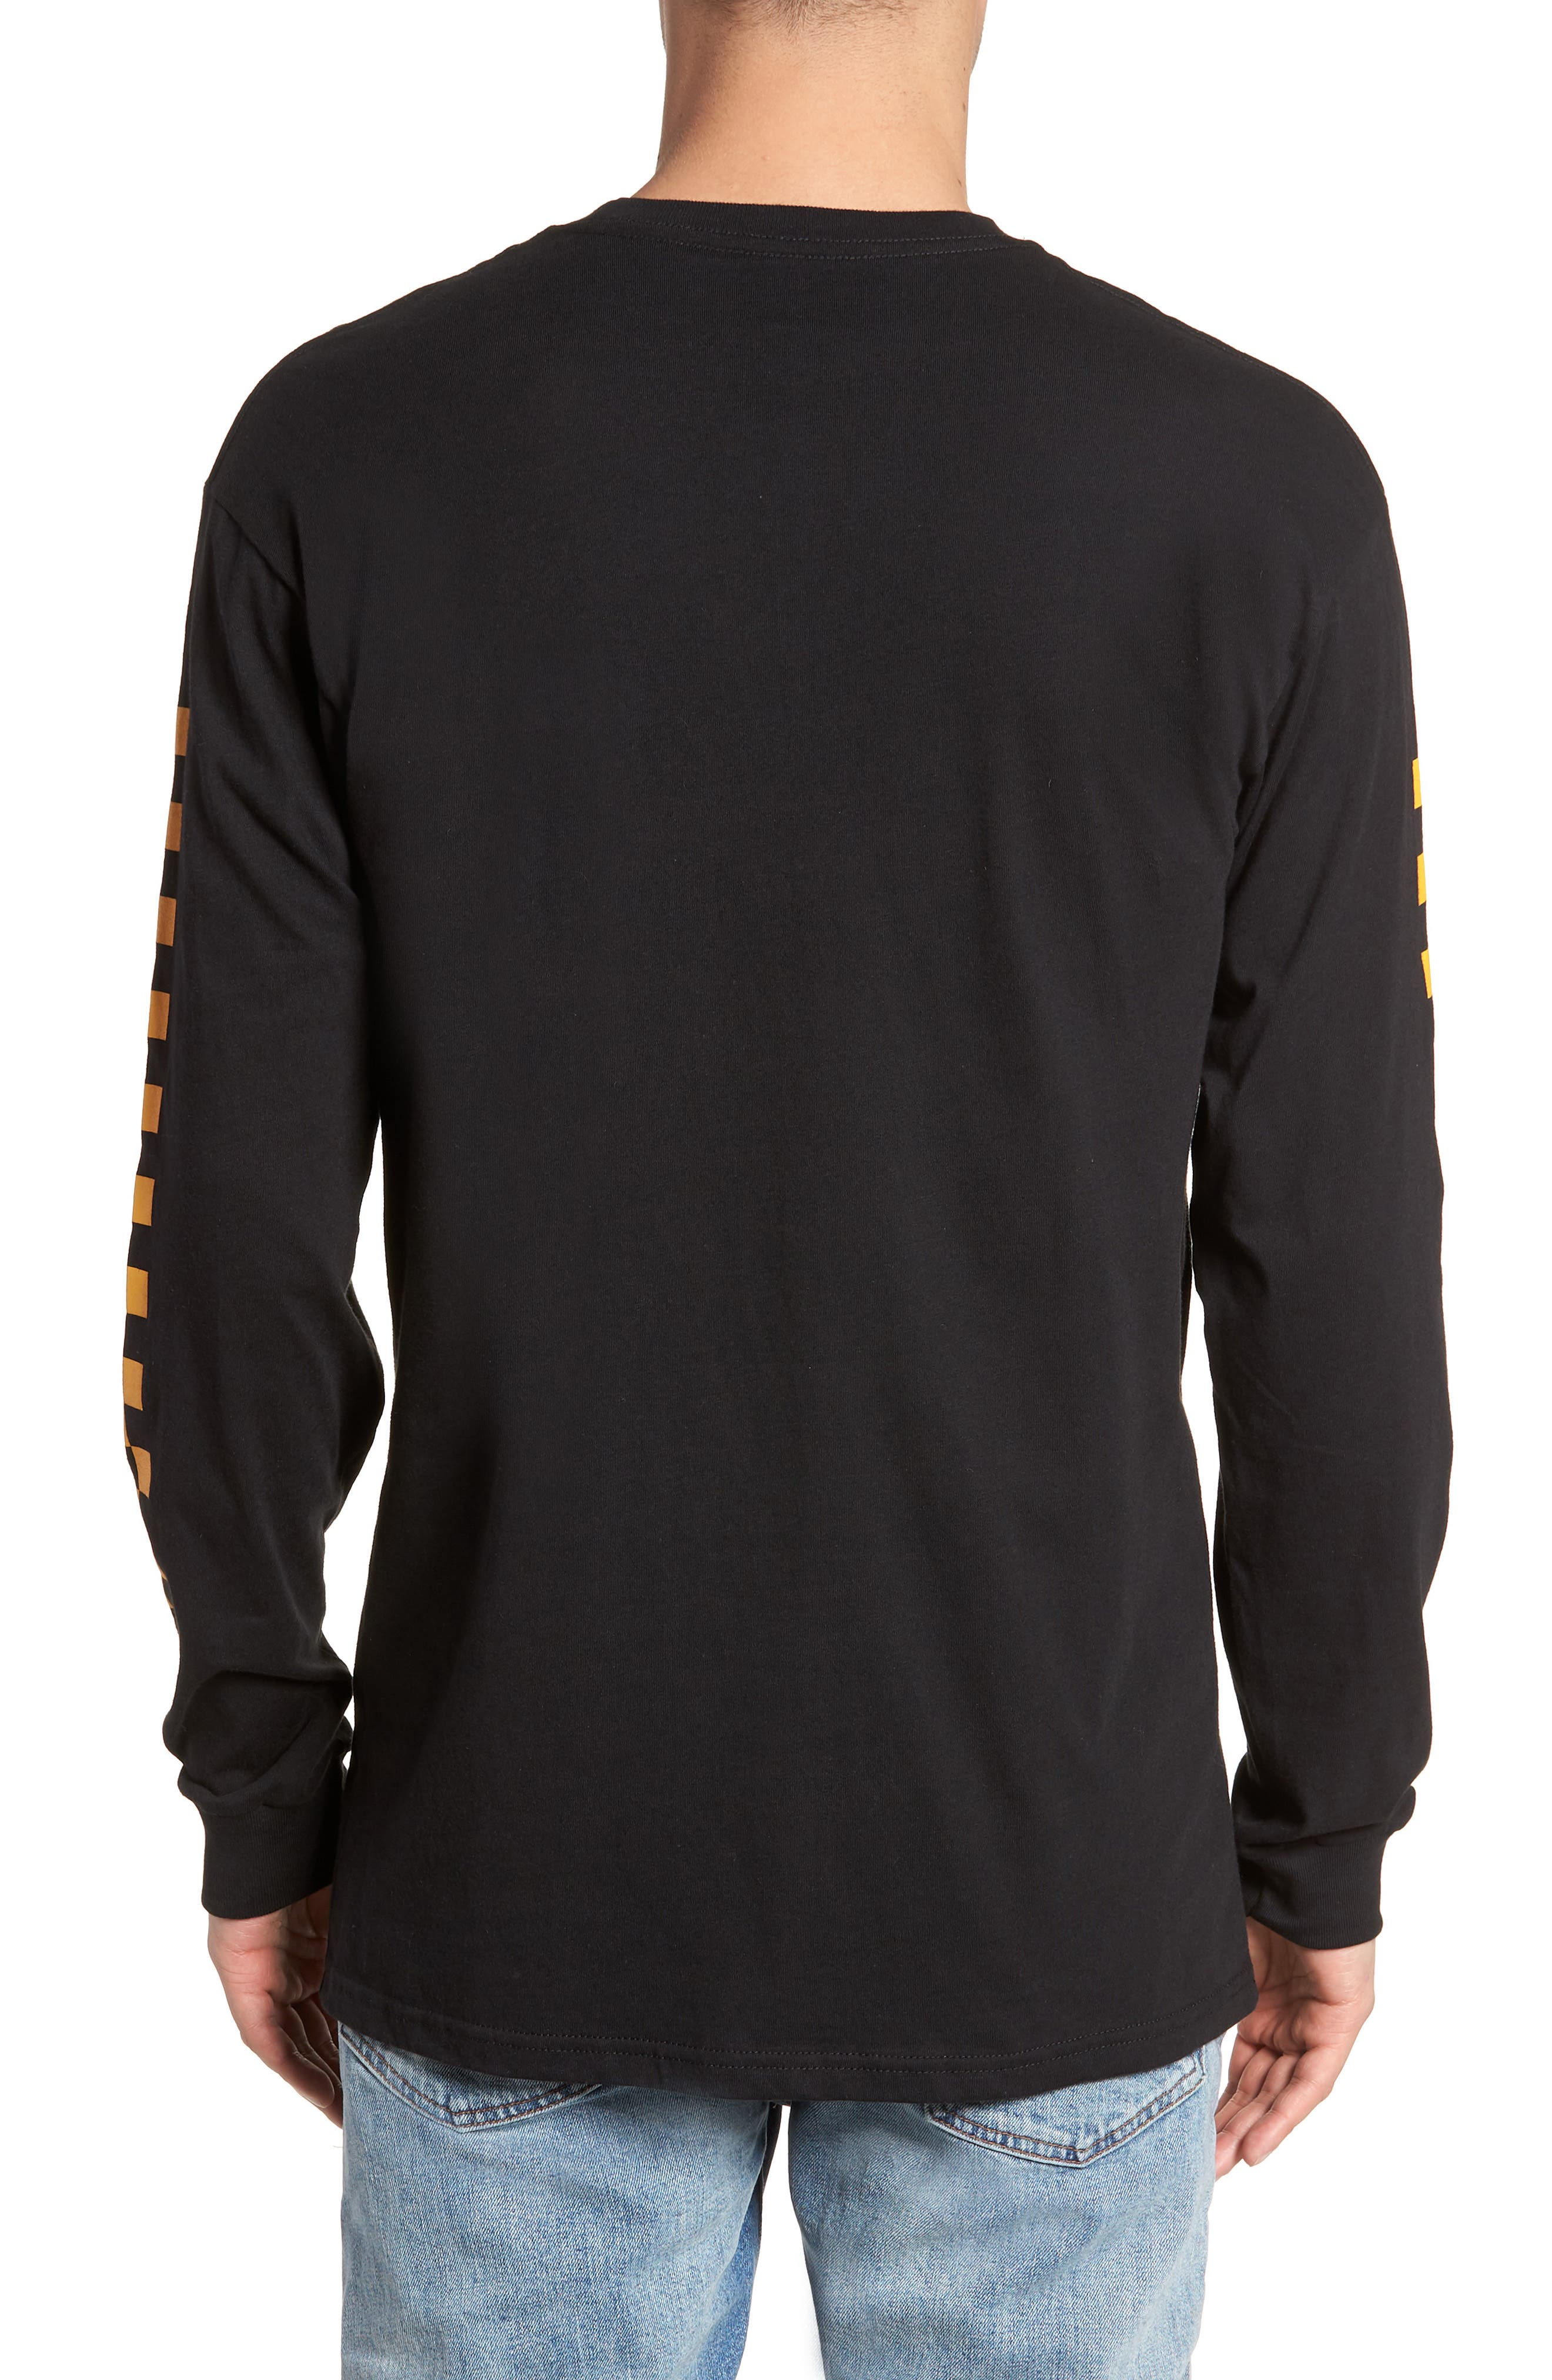 Classic Checkmate Long Sleeve T-Shirt,                             Alternate thumbnail 2, color,                             Black/ Yellow